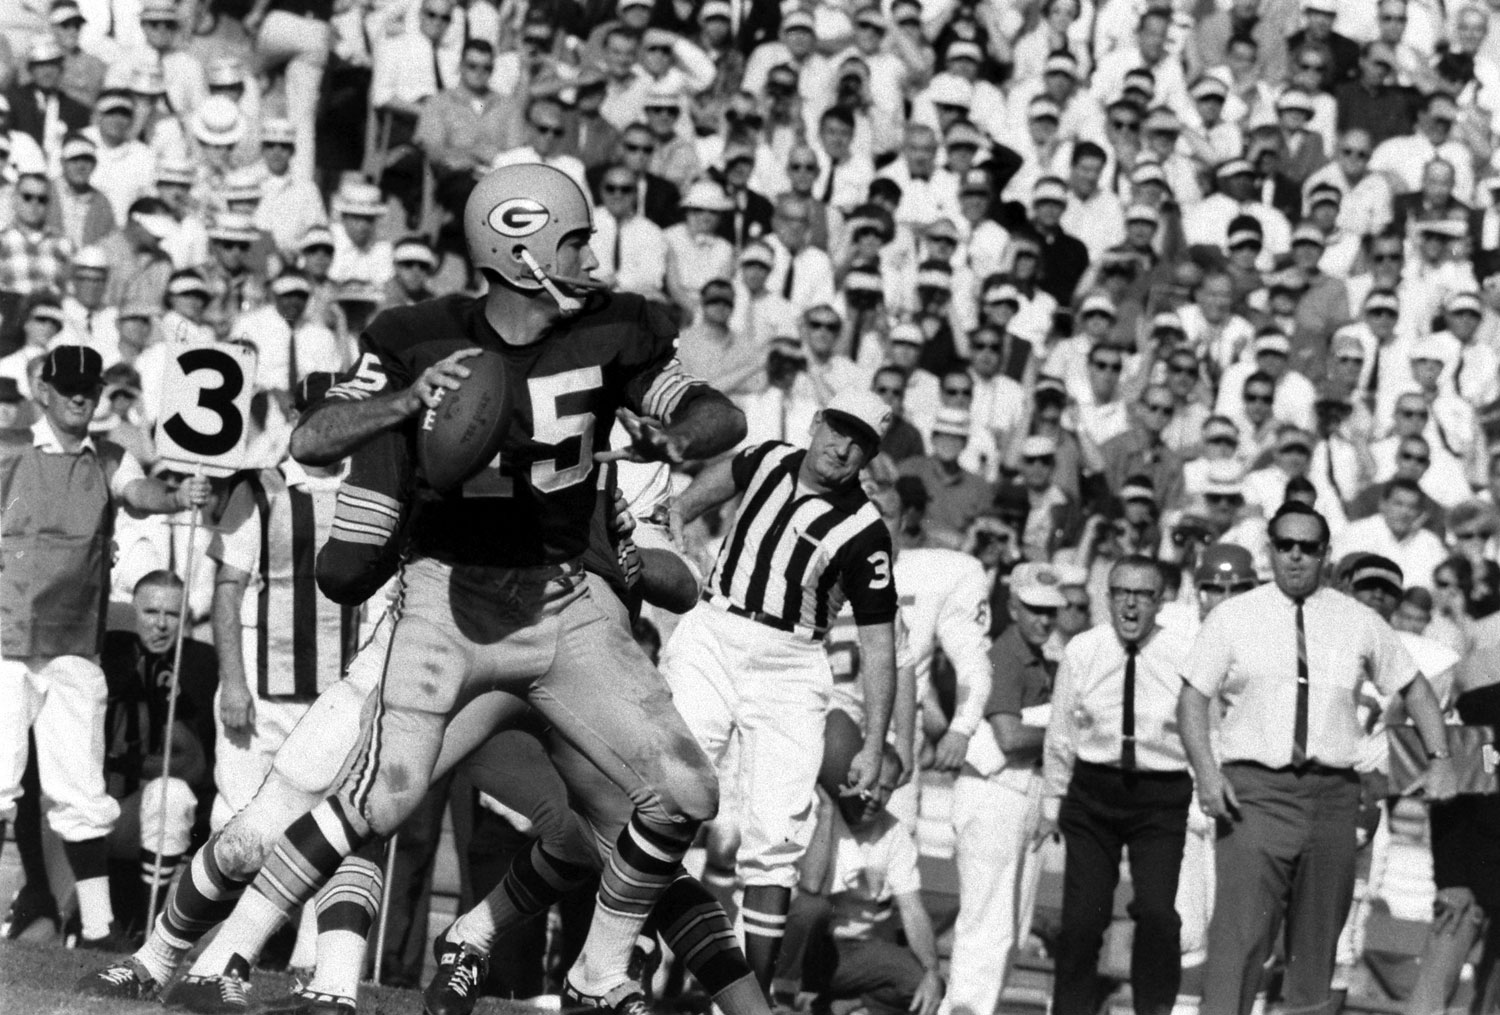 <b>Not published in LIFE.</b> Green Bay QB and game MVP Bart Starr, Super Bowl I, 1967.